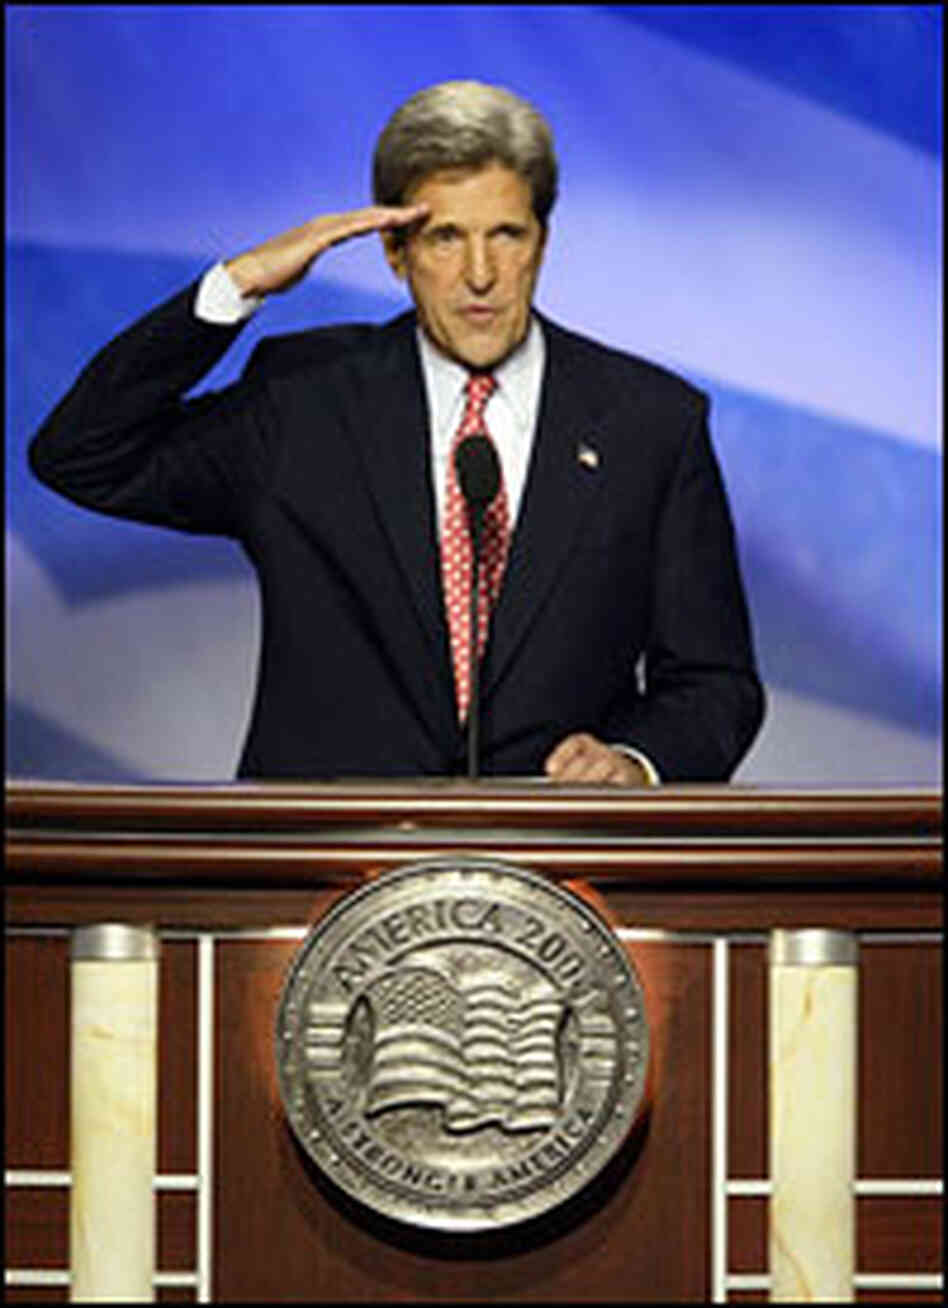 John Kerry saluted when he accepted the Democratic nomination in 2004.